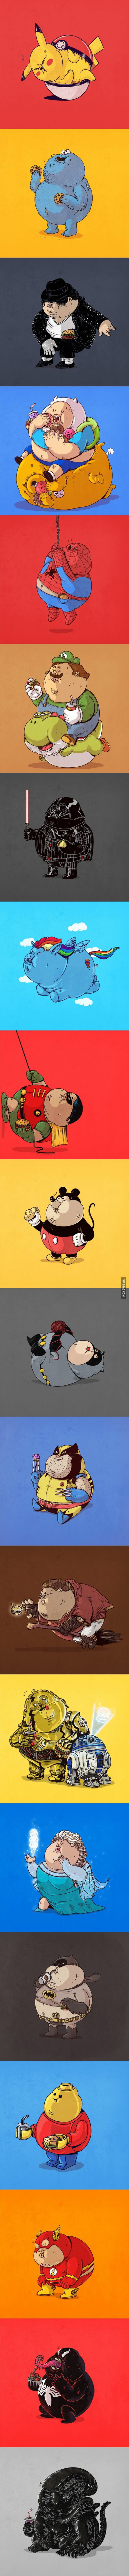 Morbidly Obese Pop Culture Icons